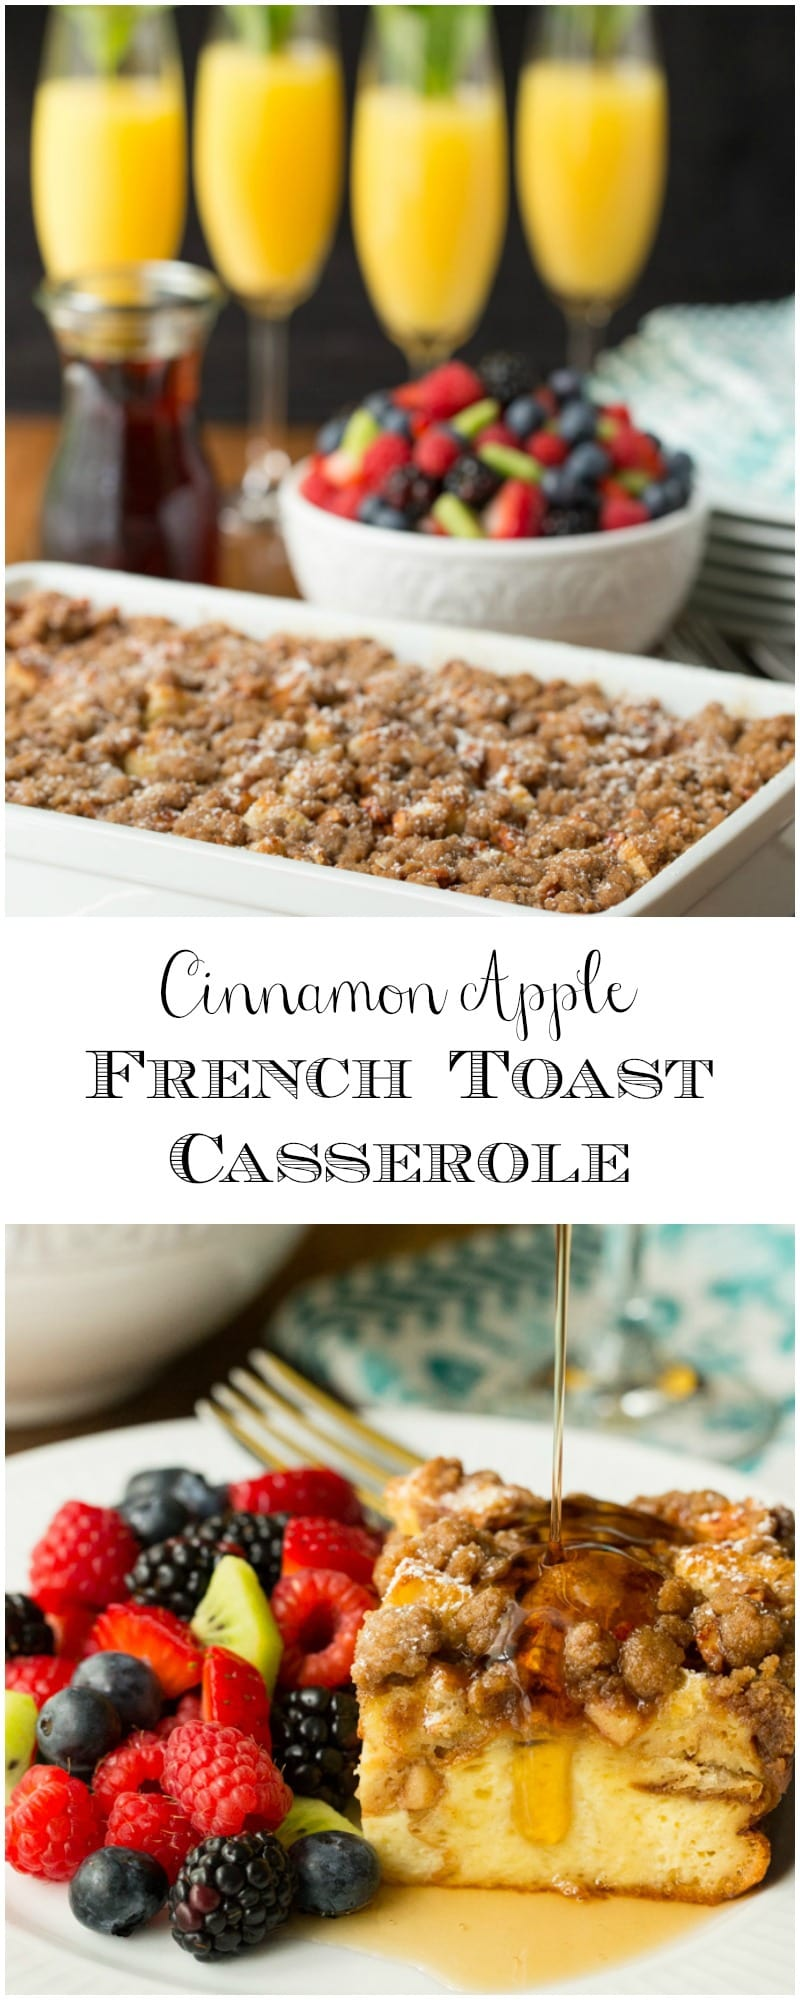 You\'re going to love this crazy delicious overnight Cinnamon Apple French Toast casserole. Prep it the night before - in the morning, breakfast is simple!